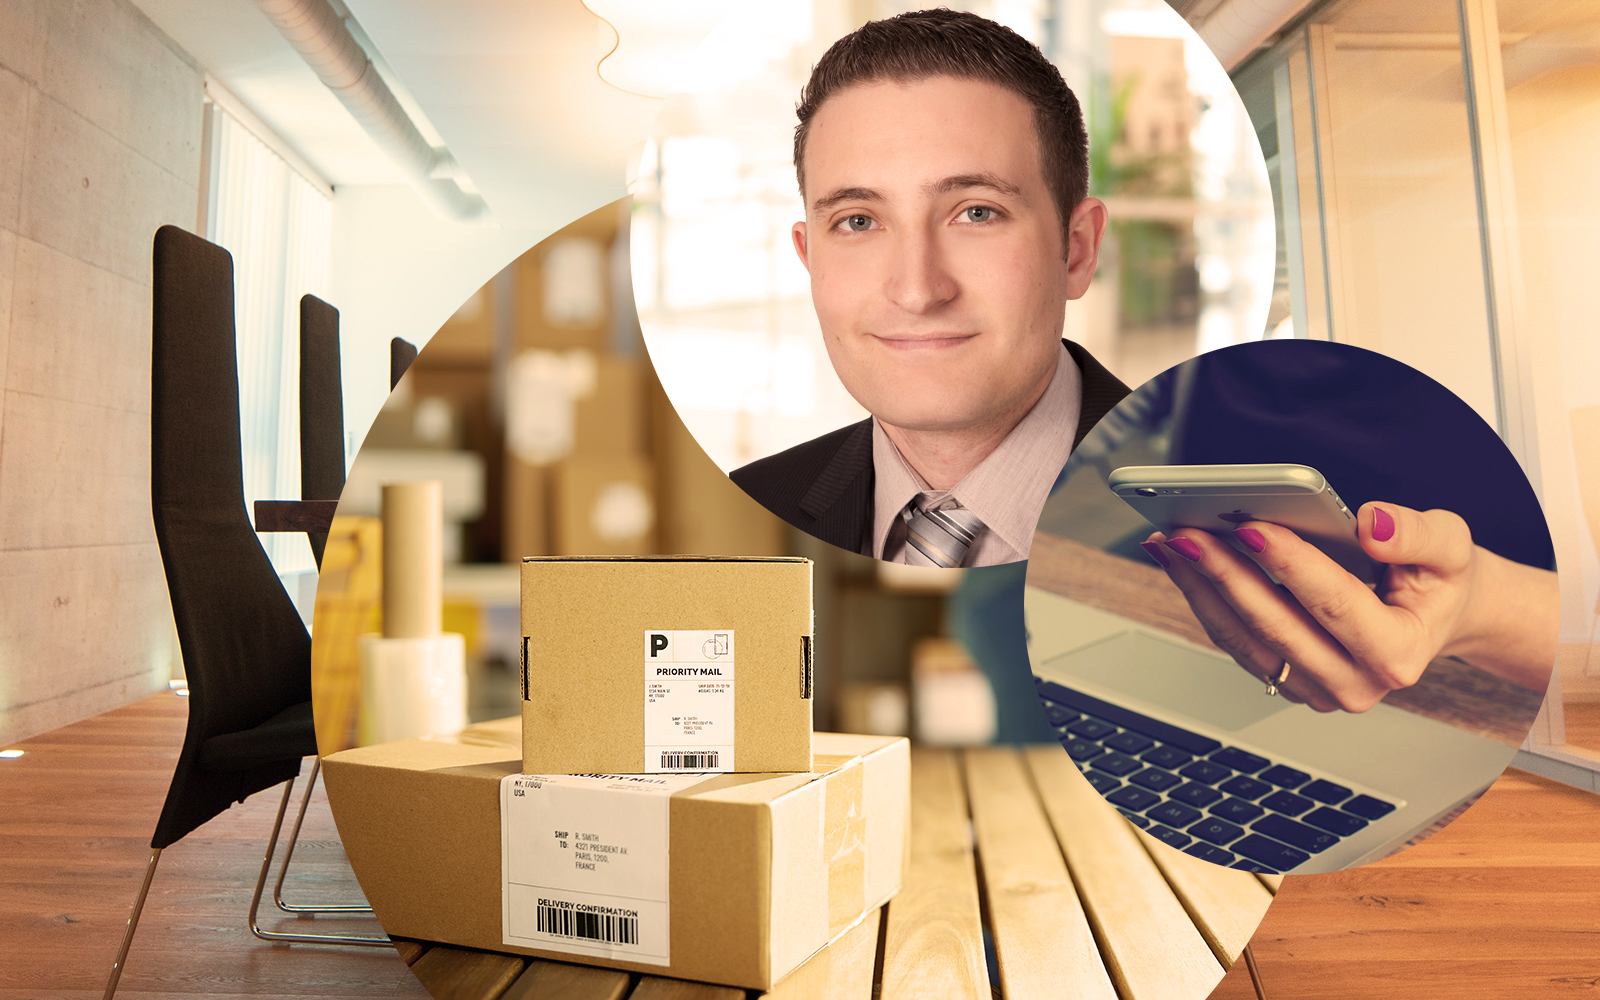 Picture of Simon Hamm, valantic CEC Germany, next to it a smartphone and stacked packages